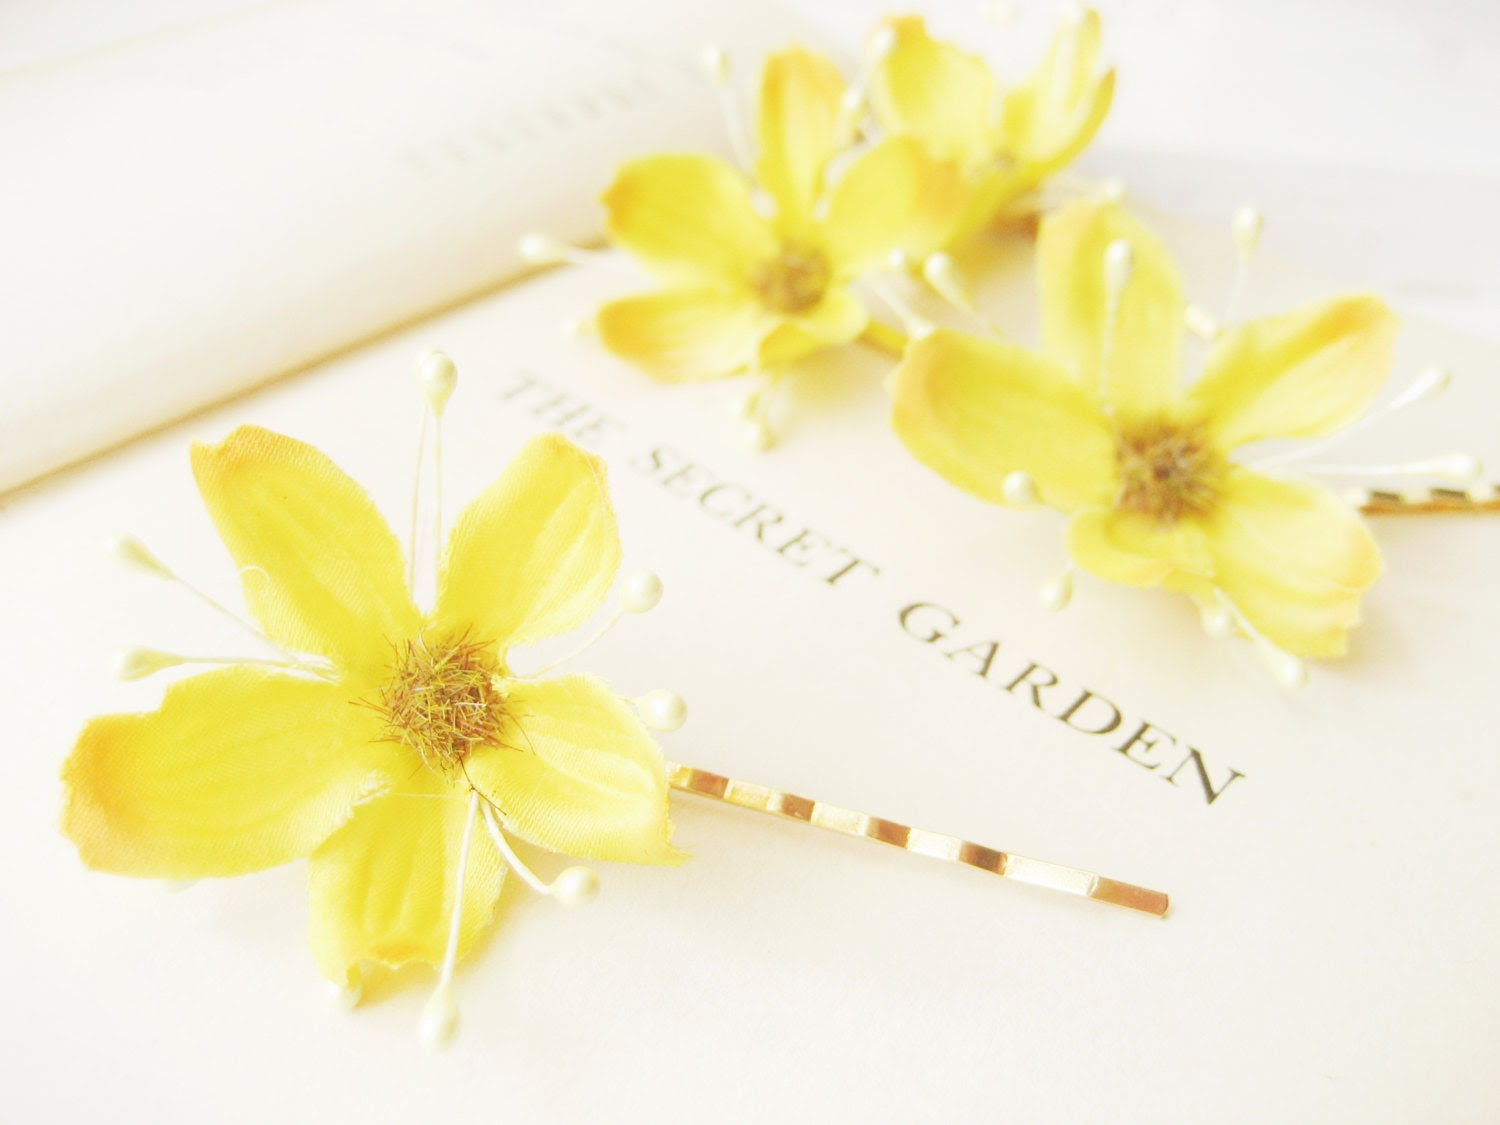 Yellow Flower Bobby Pin Set, Spring Blossoms, Floral Hair Grip, Bohemian Wedding Hair Accessories, Bridal, Whimsical, Gold, Starflower - NoonOnTheMoon